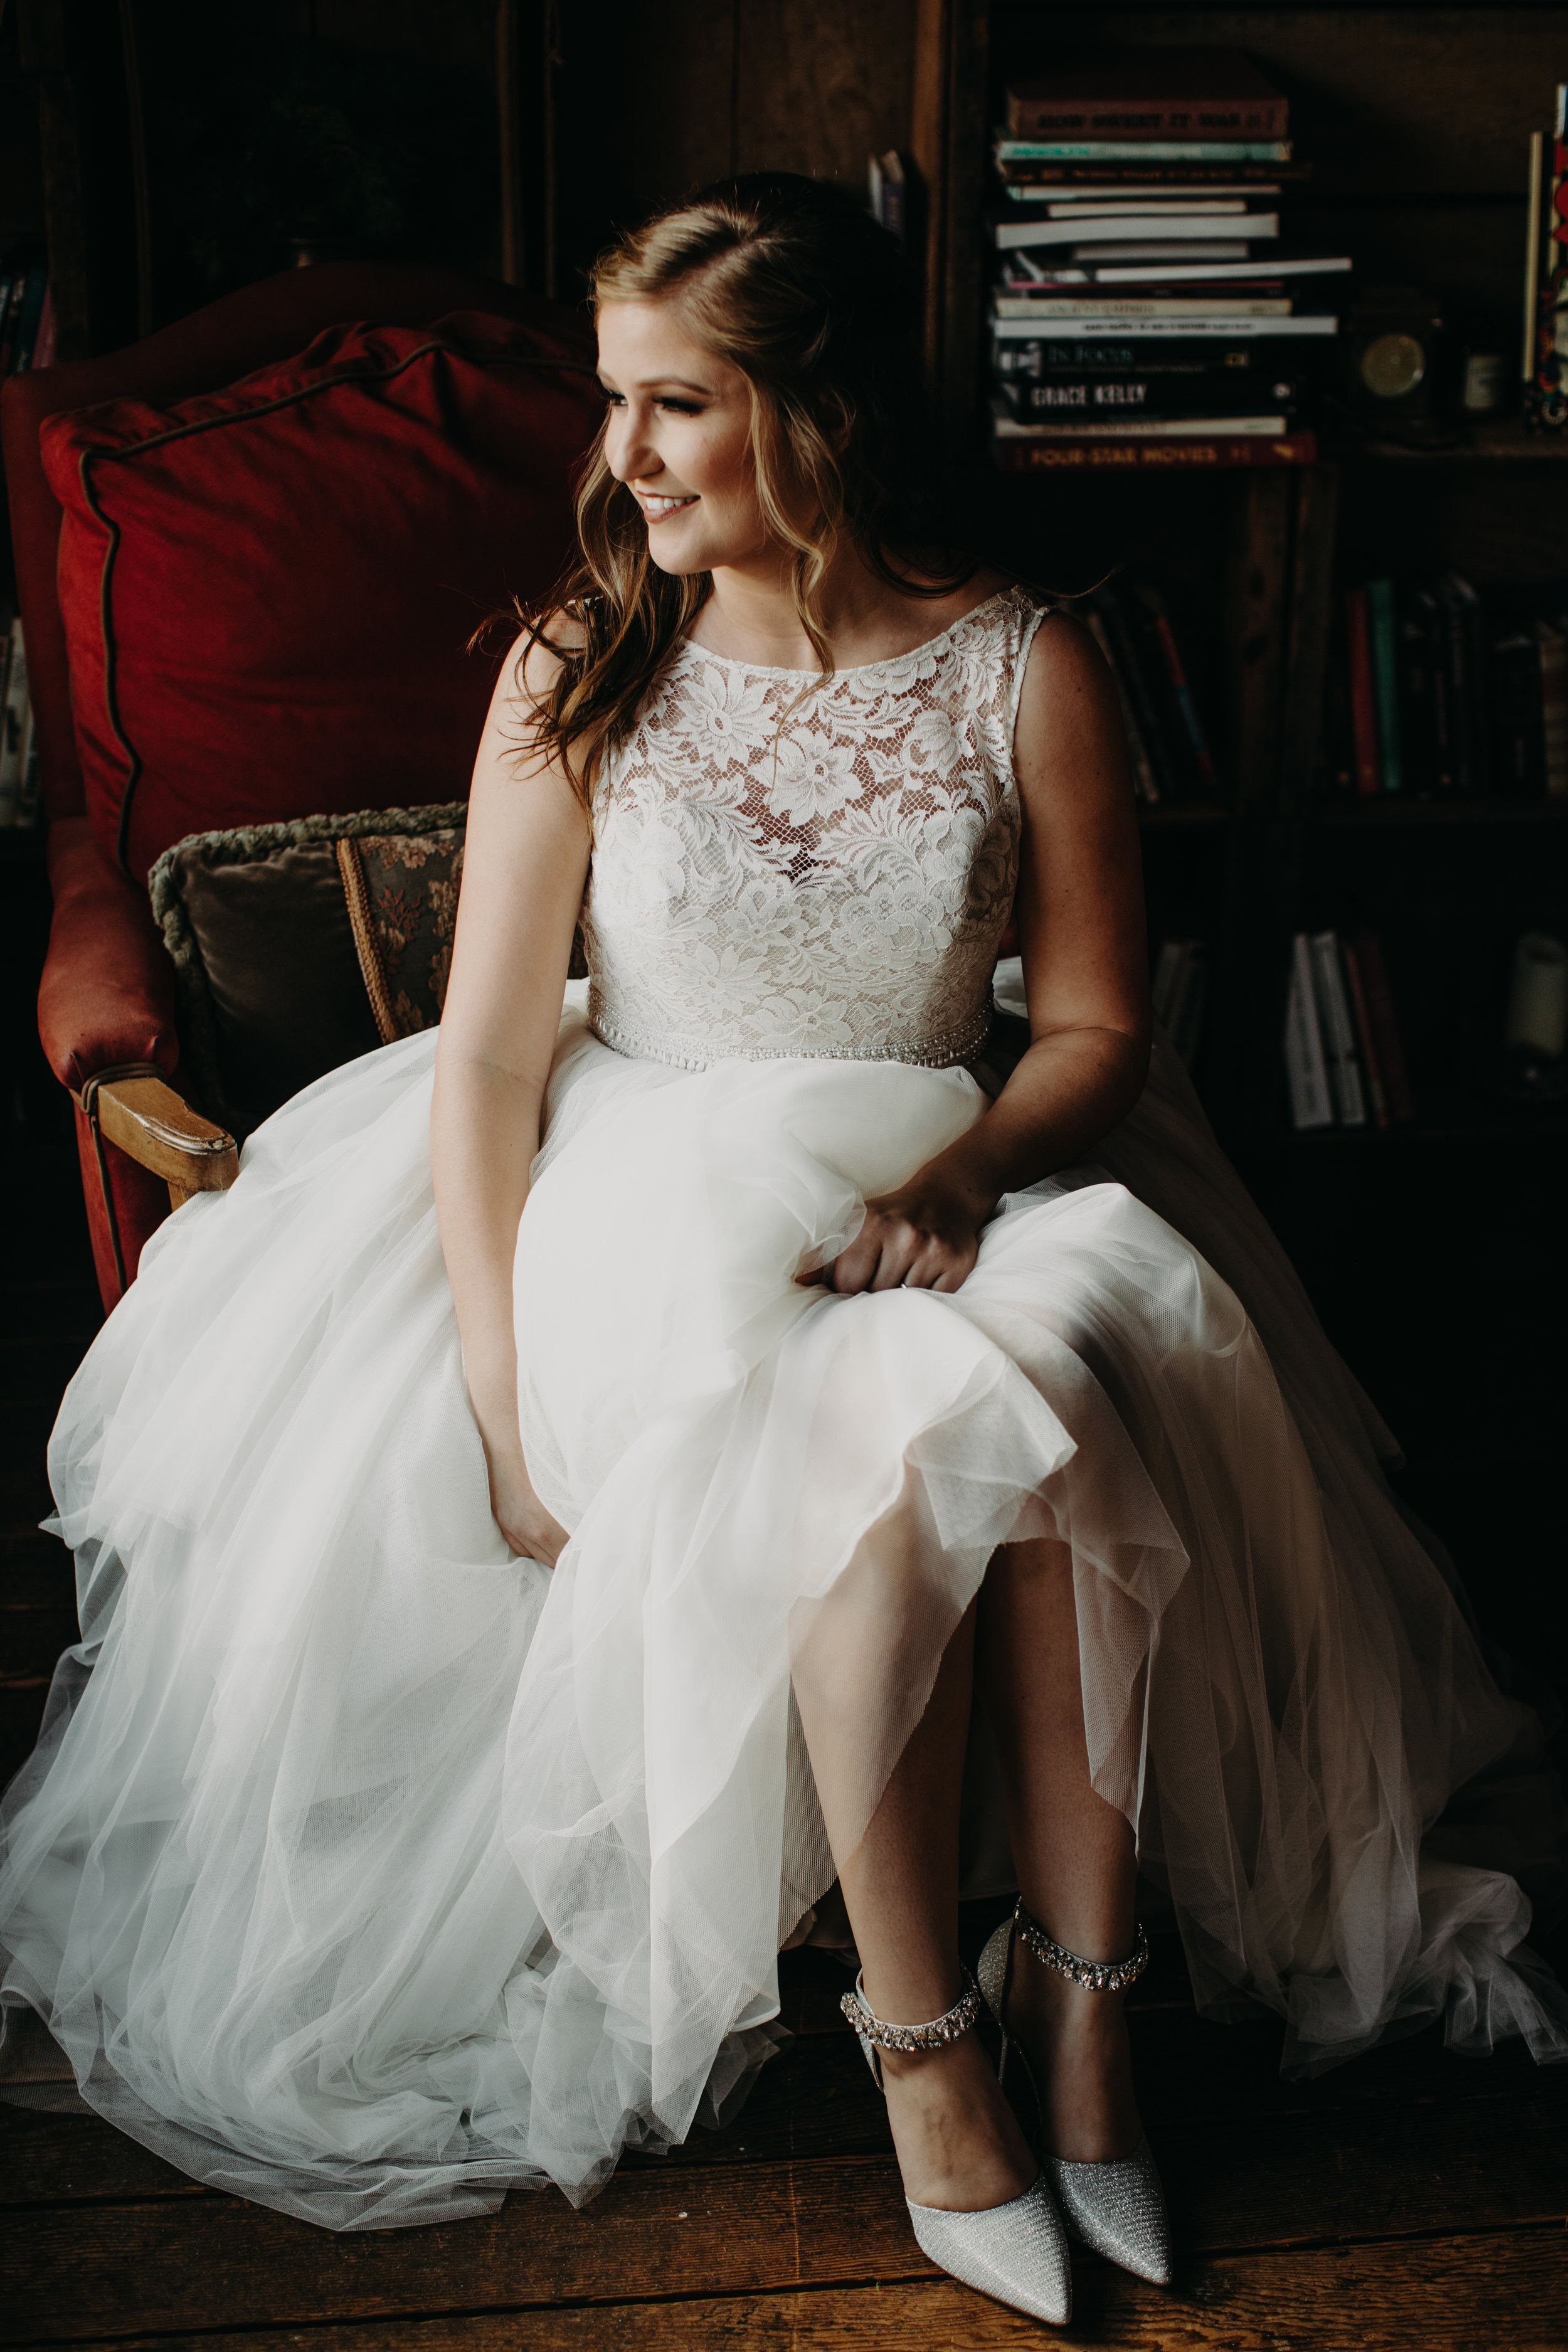 Smoky Hollow Studios Wedding Anne & Lewis Emily Magers Photography-108.jpg